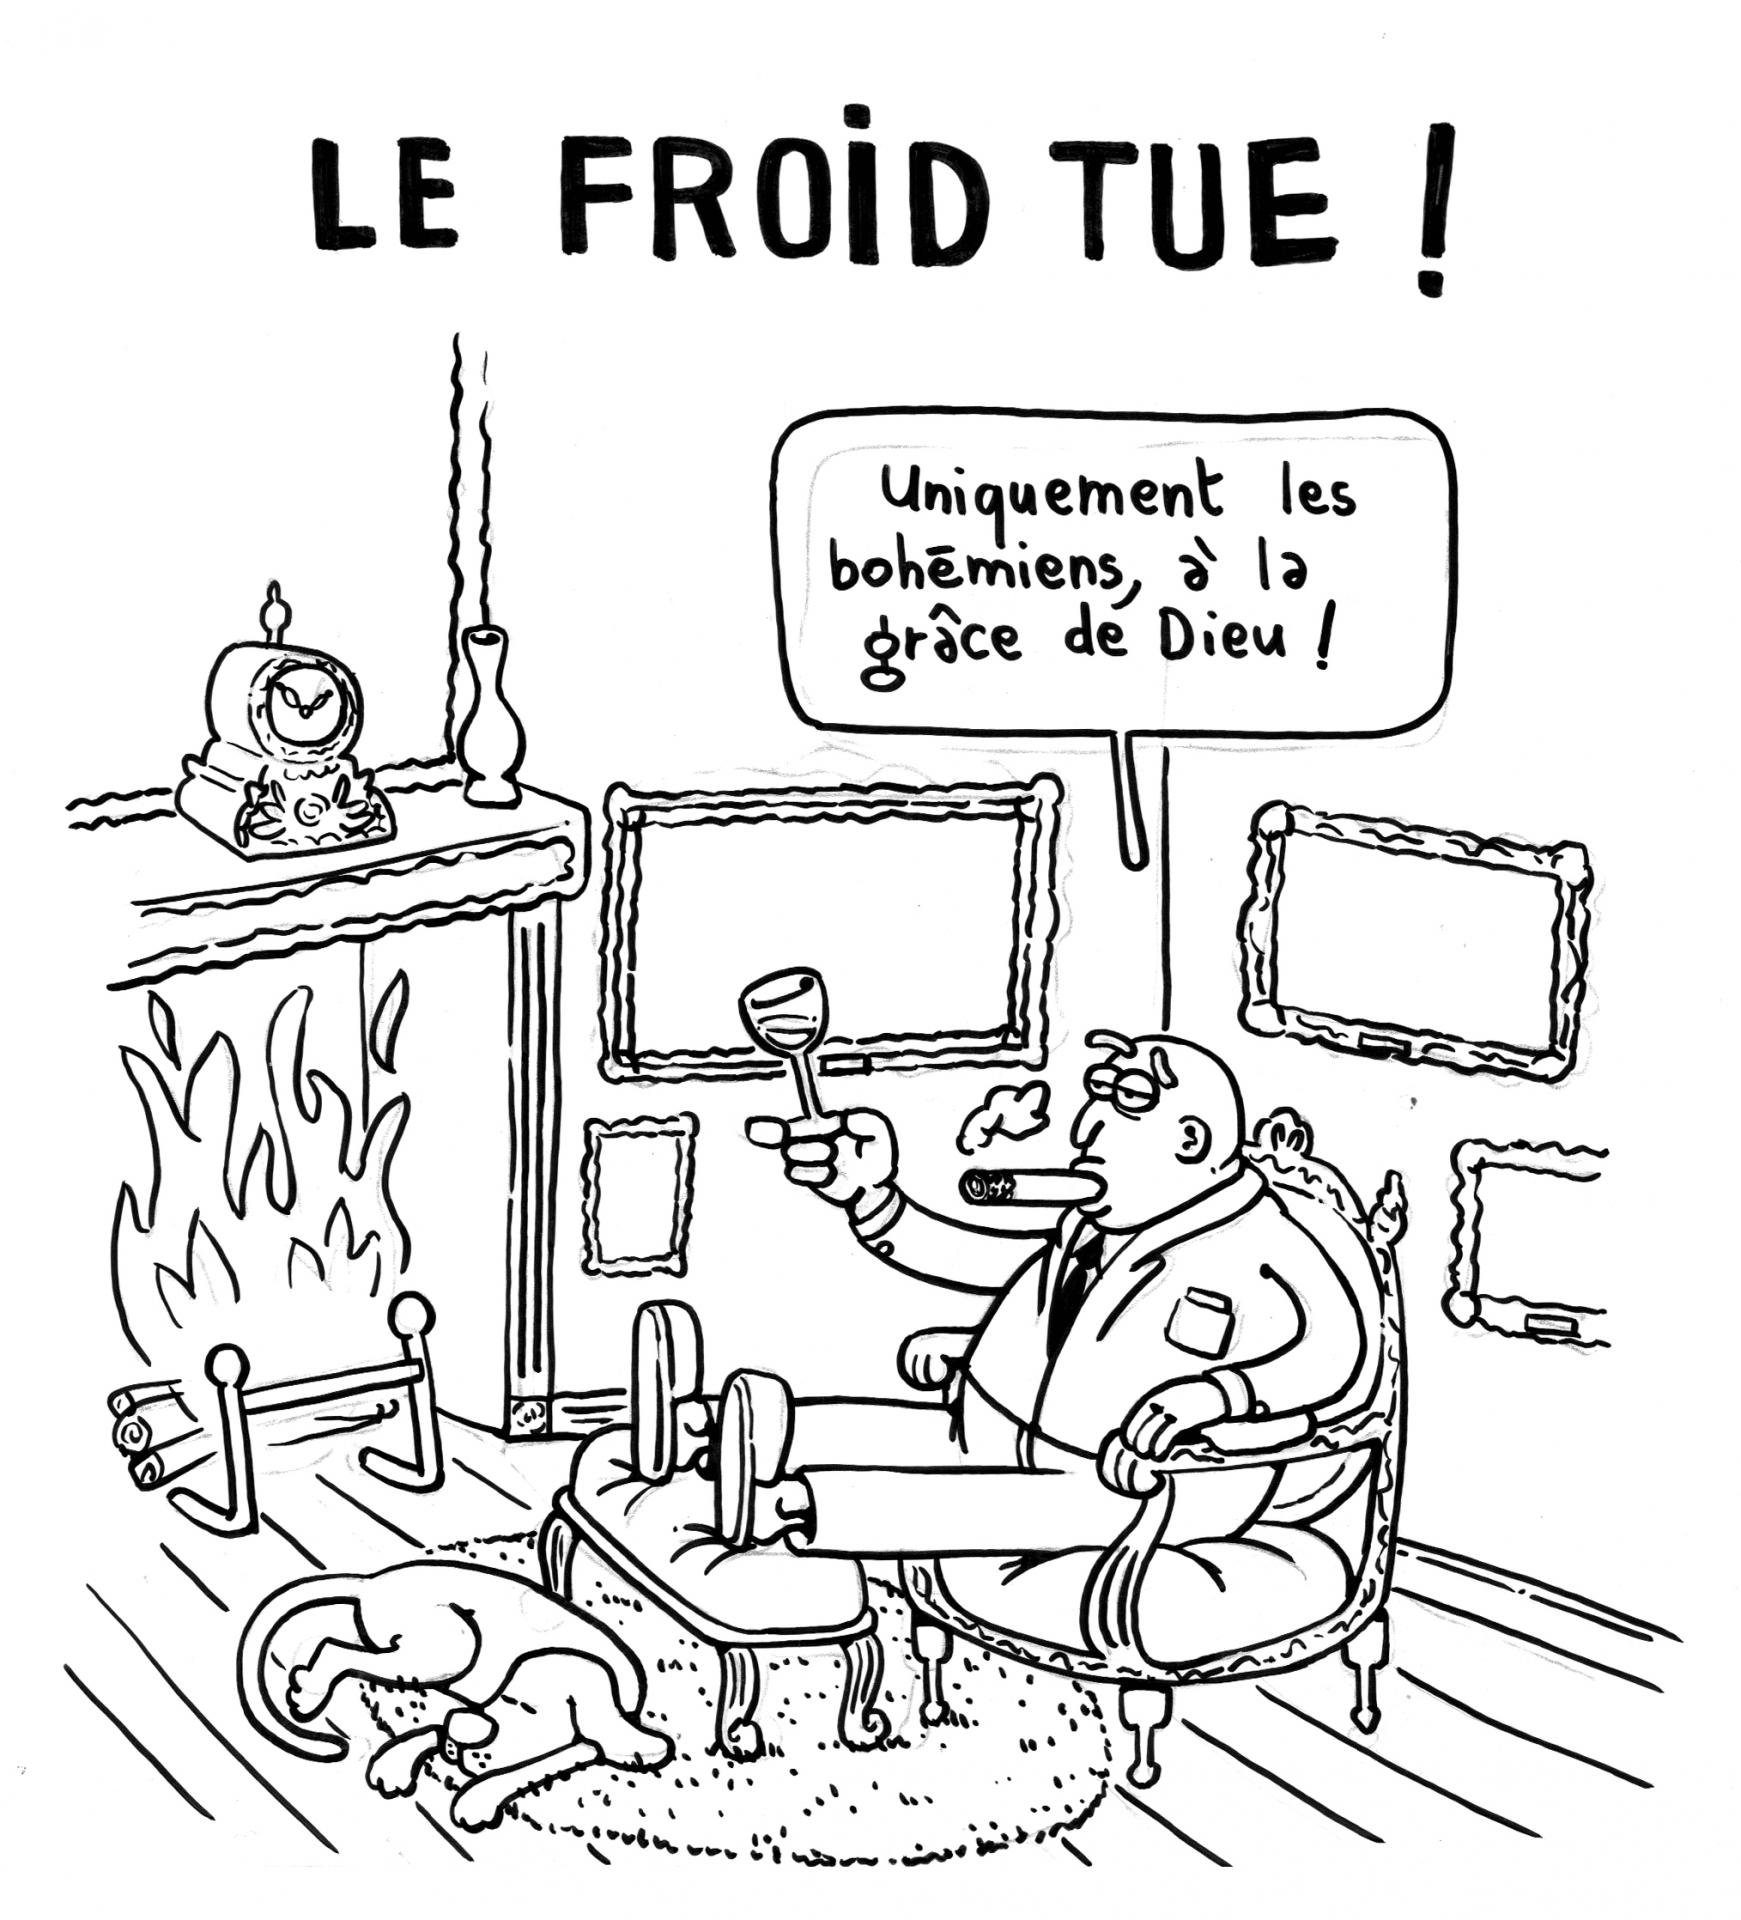 Le froid tue 1